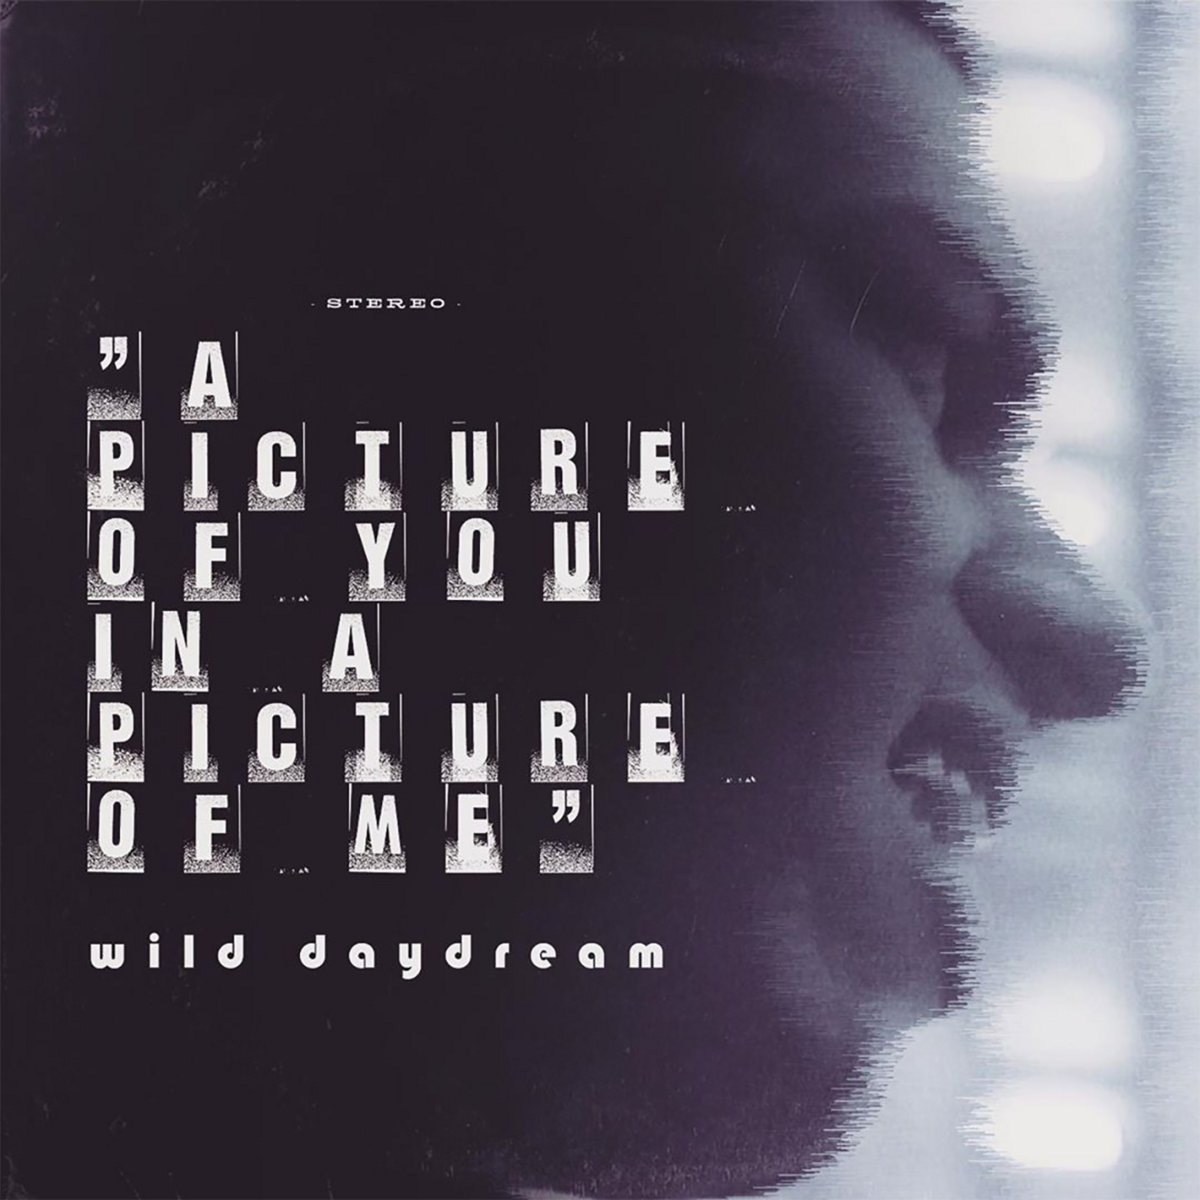 Wild Daydream – A Picture of You in a Picture of Me